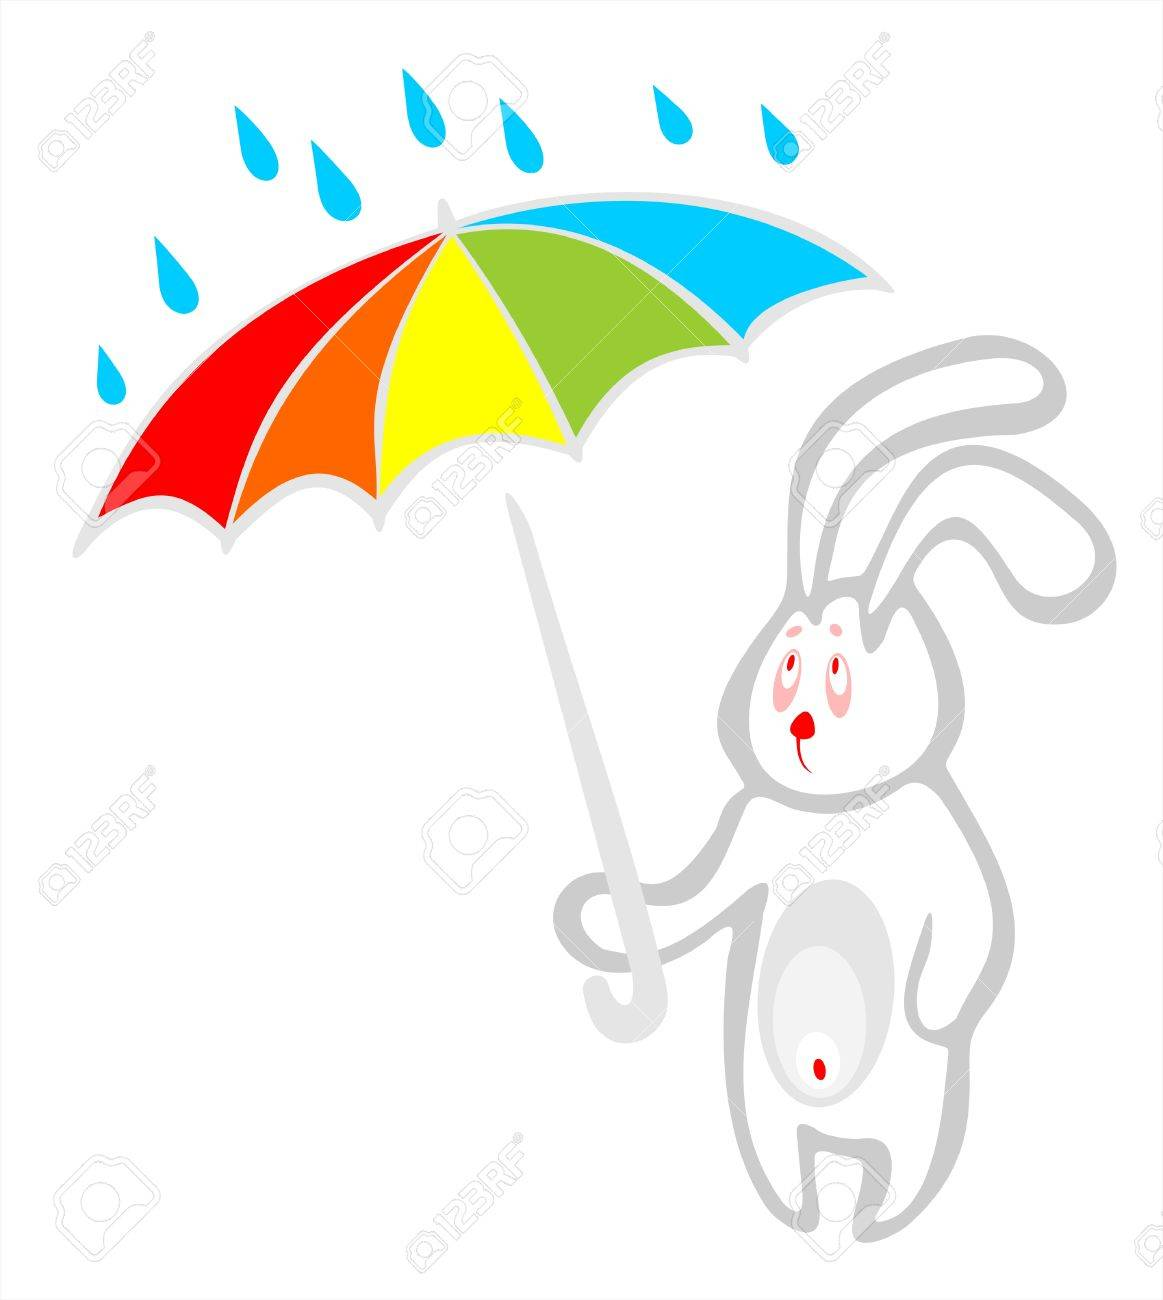 The sad white rabbit has hidden under a umbrella from a rain. Stock Vector - 1894111